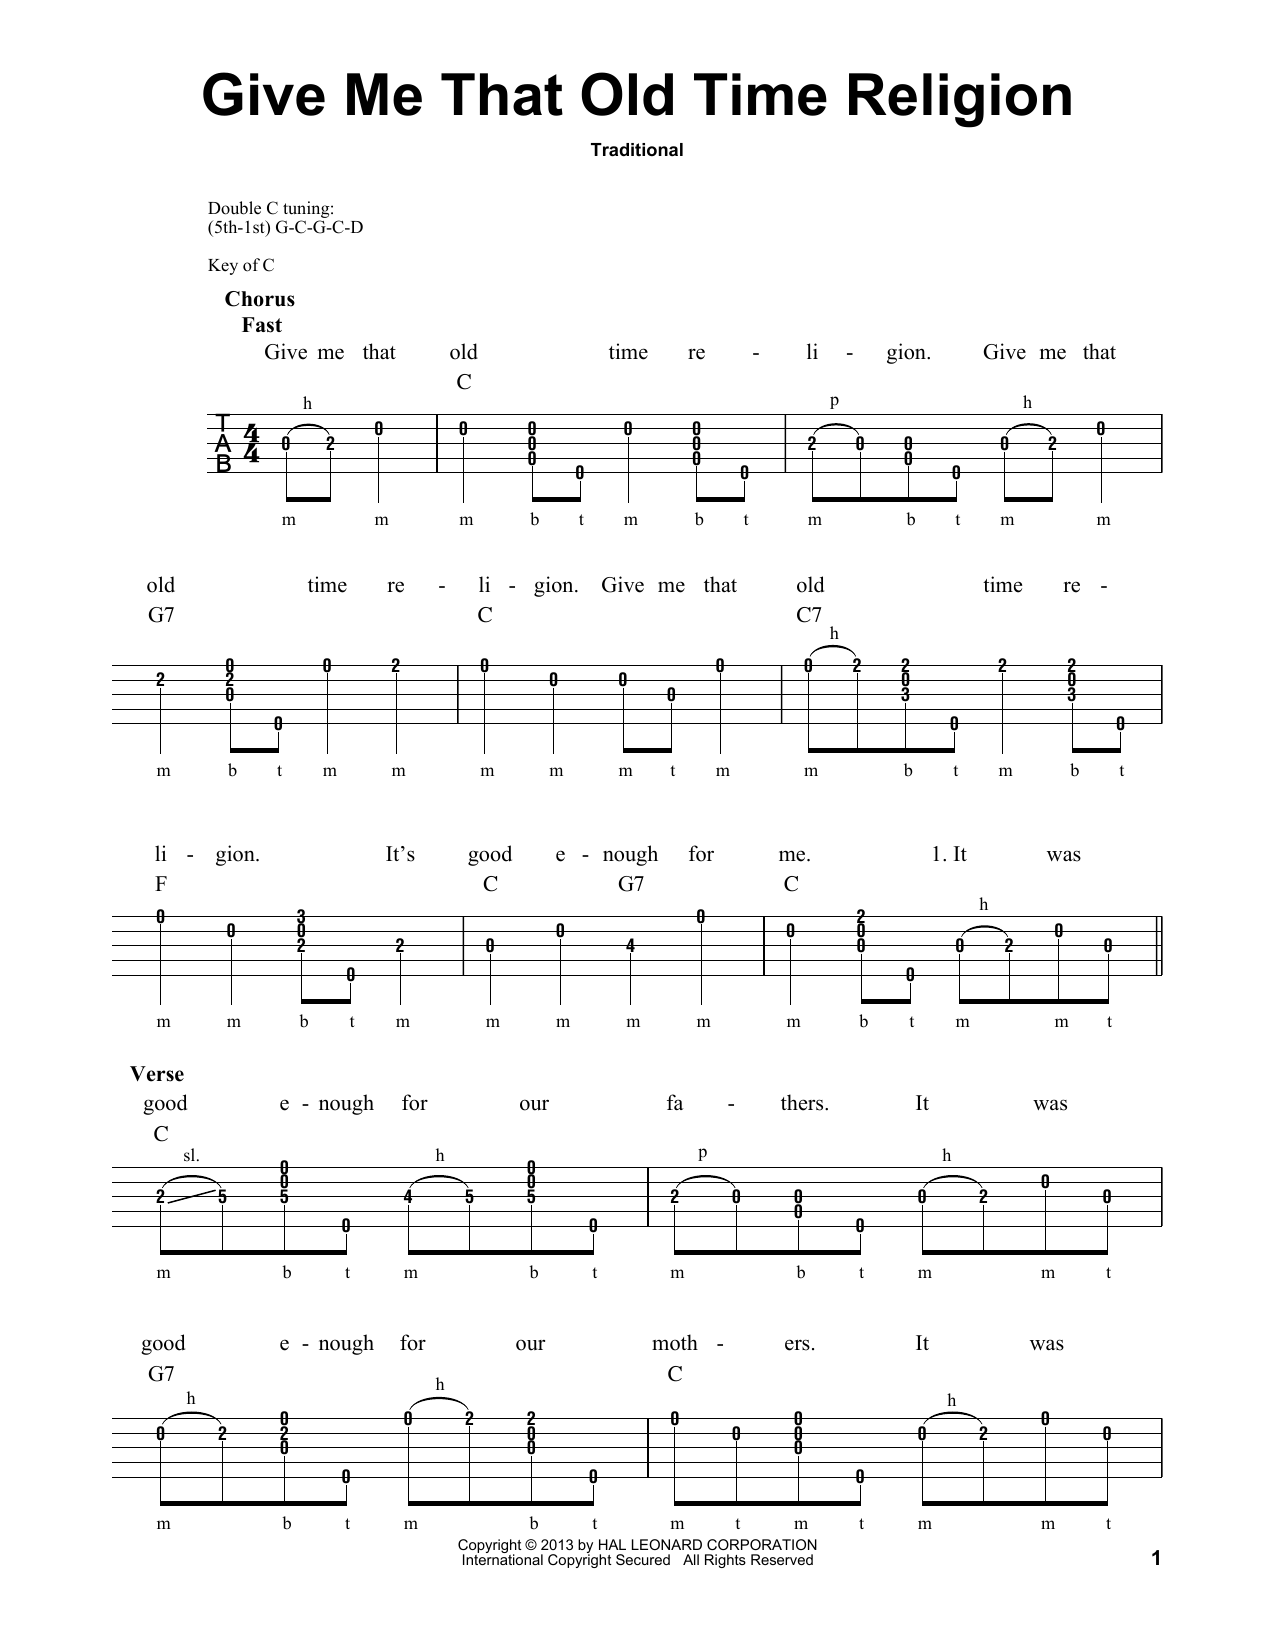 Give Me That Old Time Religion (Banjo Tab)